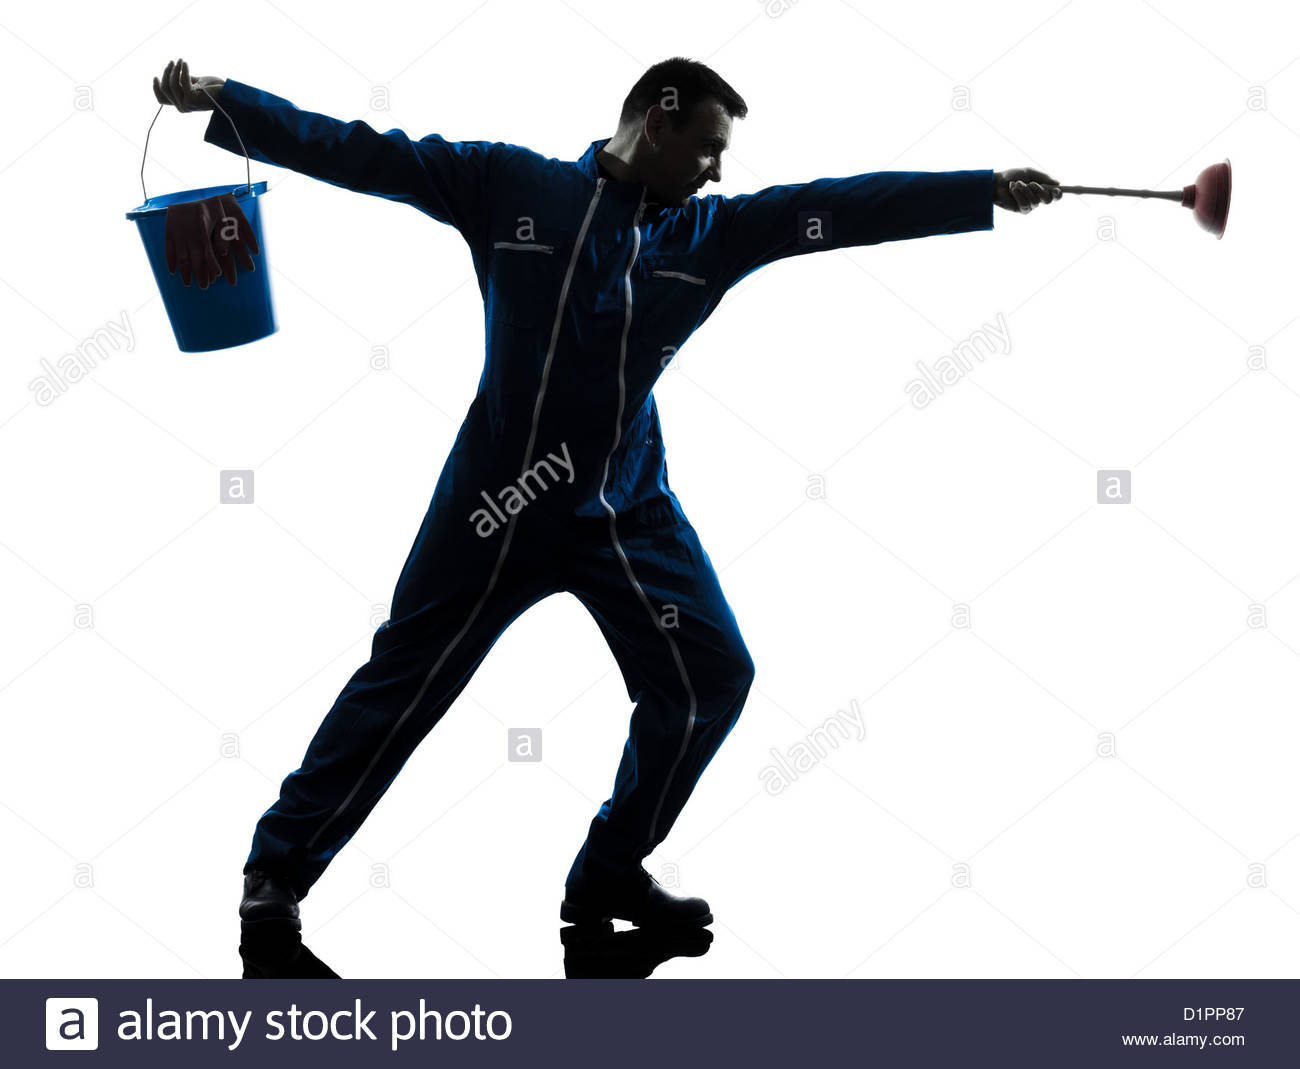 1300x1069 One Janitor Cleaner Cleaning Silhouette In Studio On White Stock